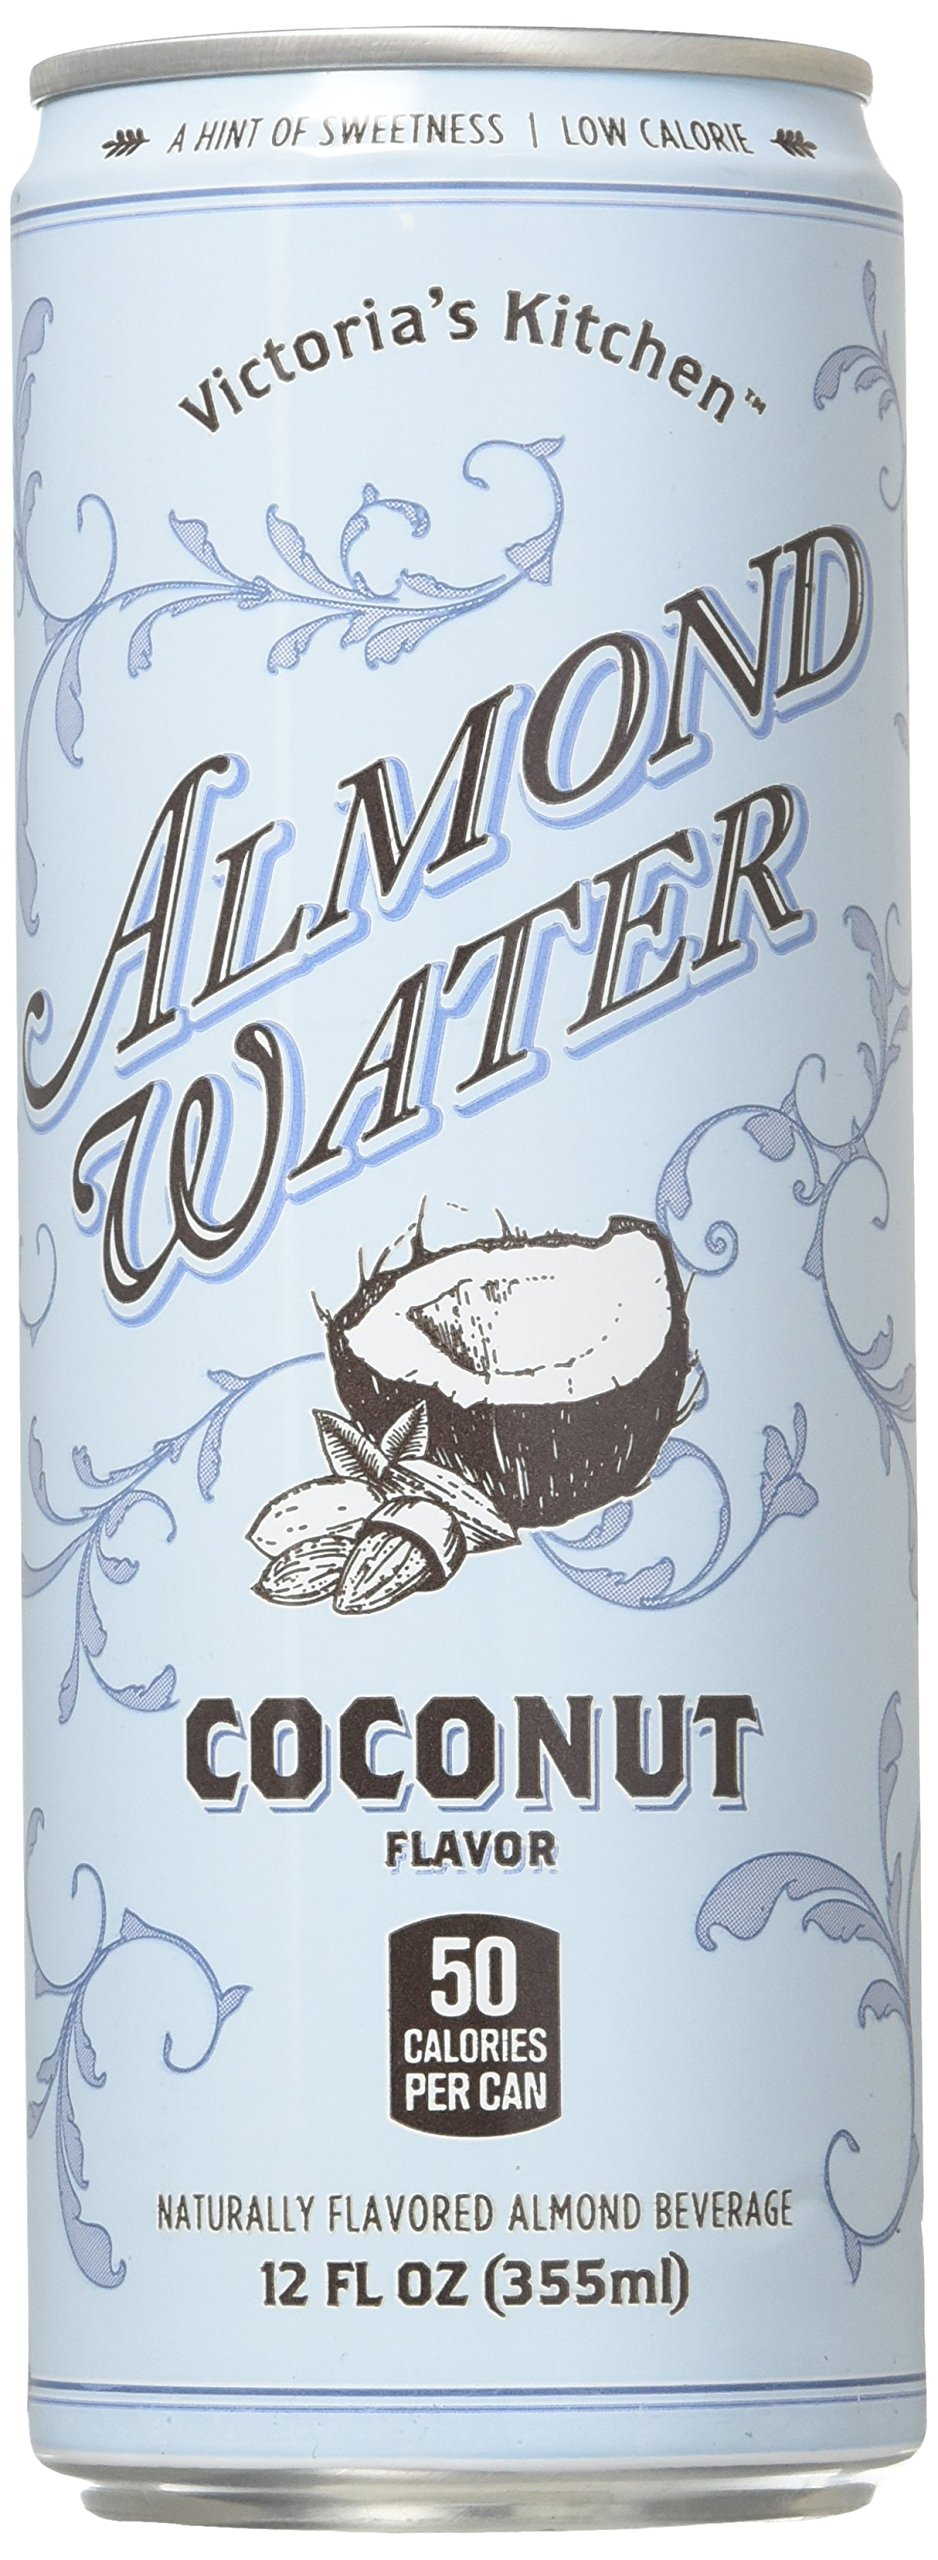 victorias kitchen almond water coconut 12 oz can pack of 12 all natural - Victorias Kitchen Almond Water